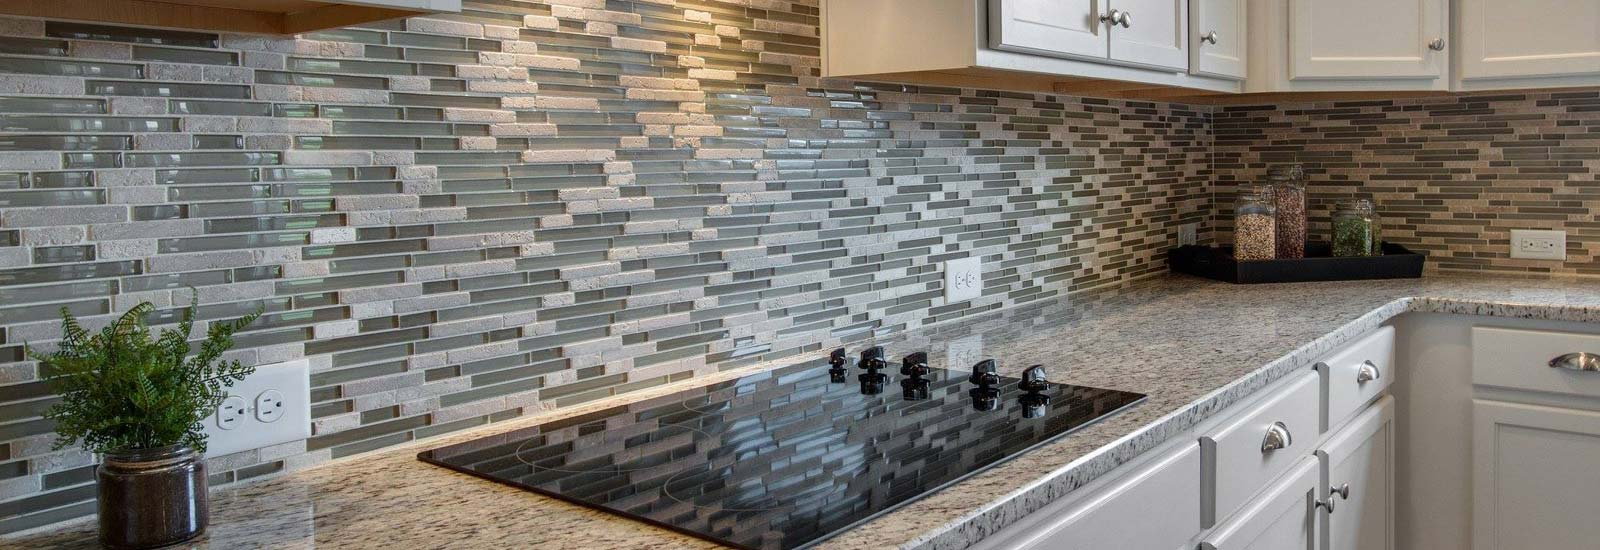 Slide Kitchen Tile Backsplash